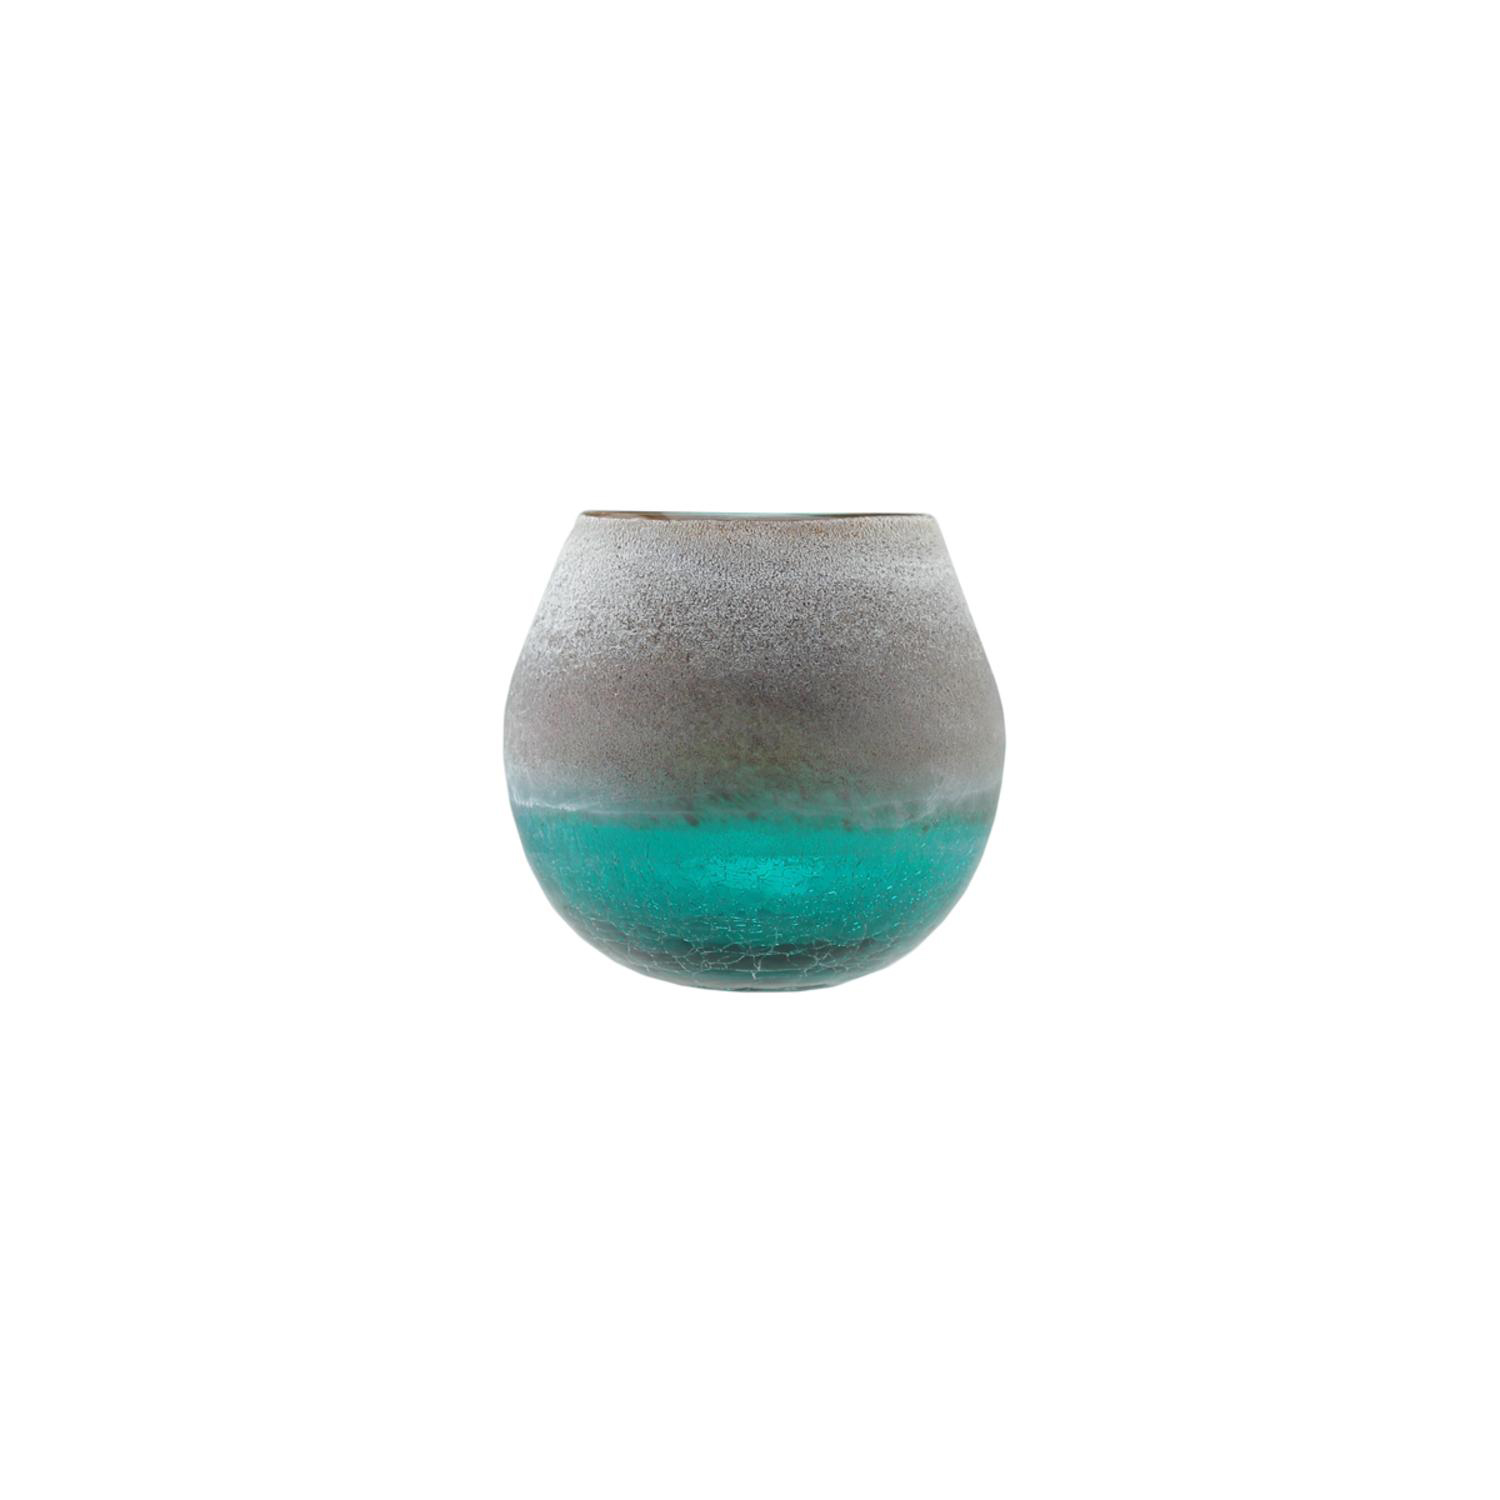 Teal Blue Crackled & Brown Frosted Hand Blown Decorative Glass Vase